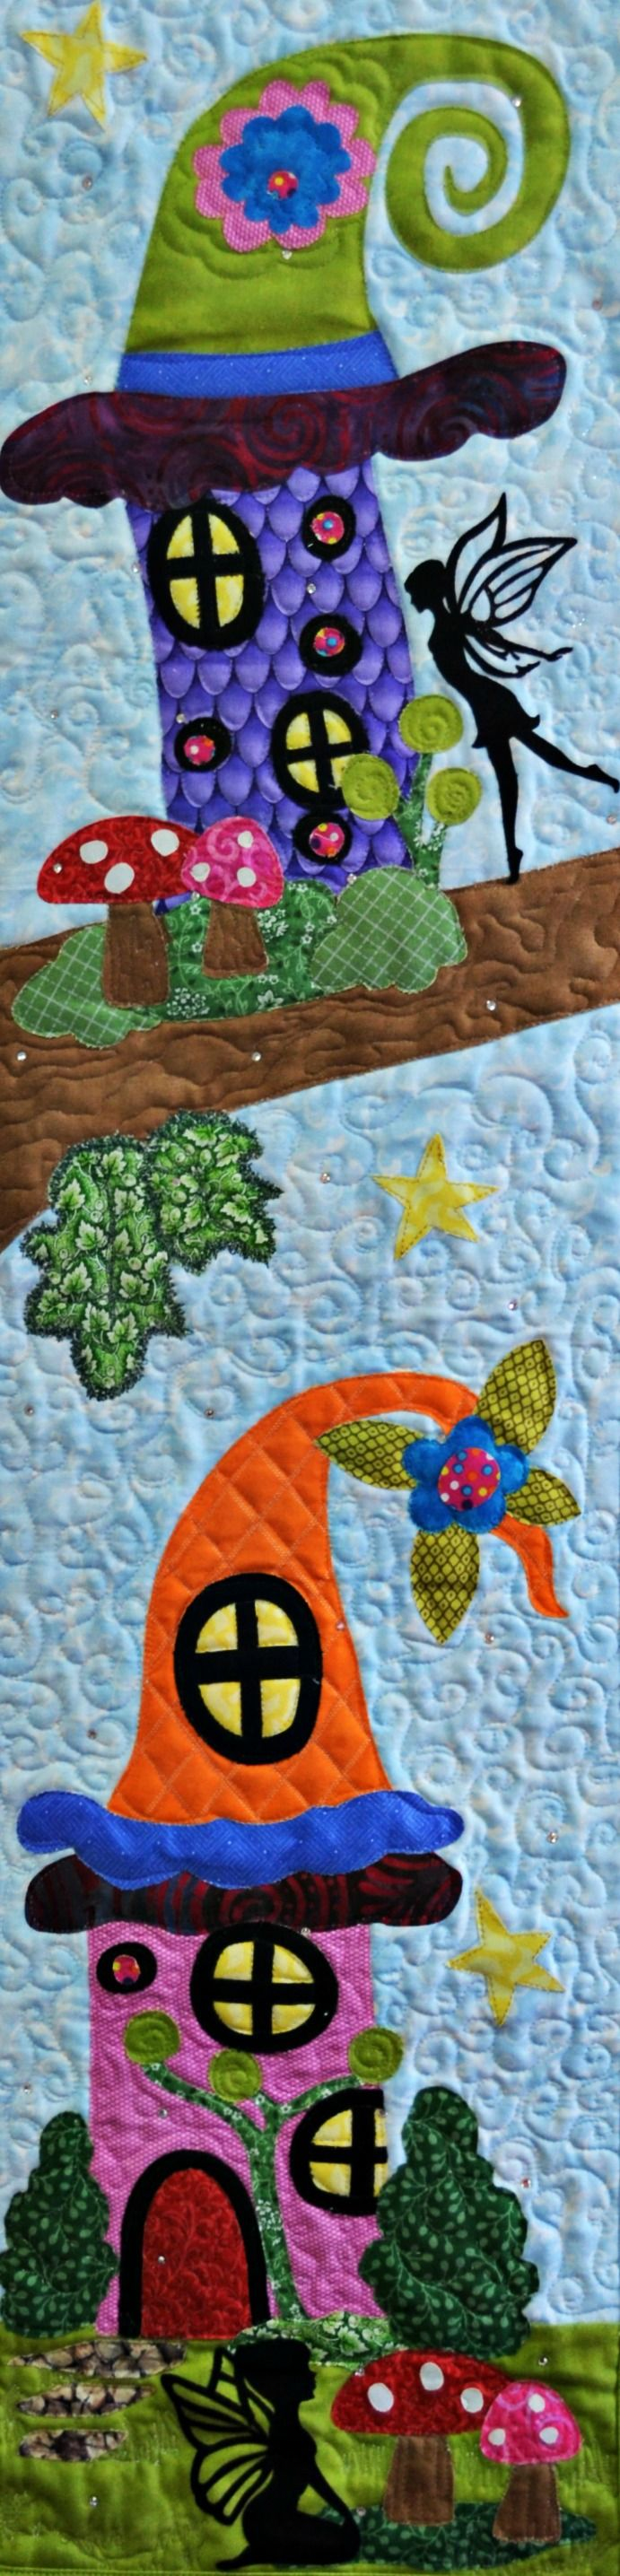 """""""Even Fairies Need Homes"""" 2016 Row by Row Quilt Kit - Thumbnail 1"""